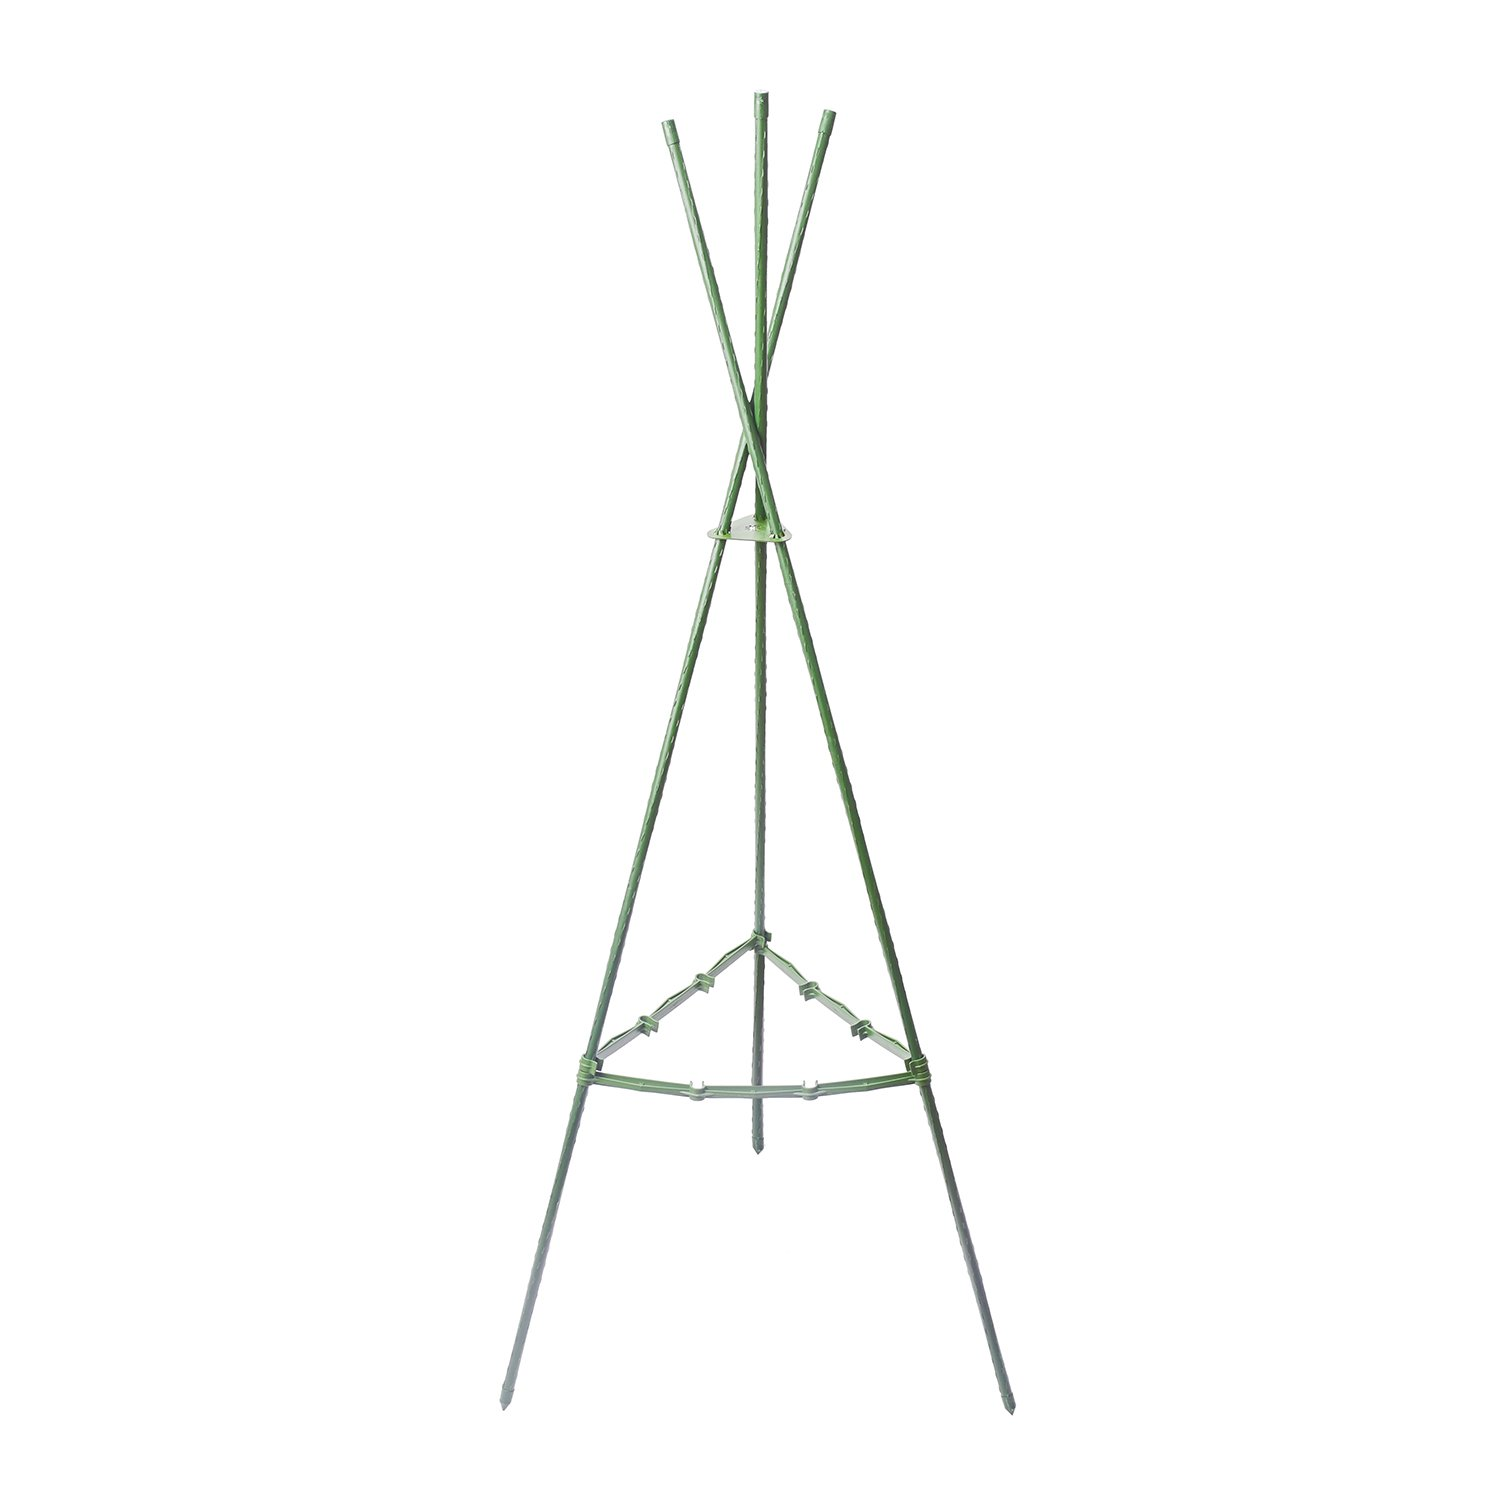 Funseedrr Tomato Cages Triangular Plant support Heavy Duty, 47.24 inch